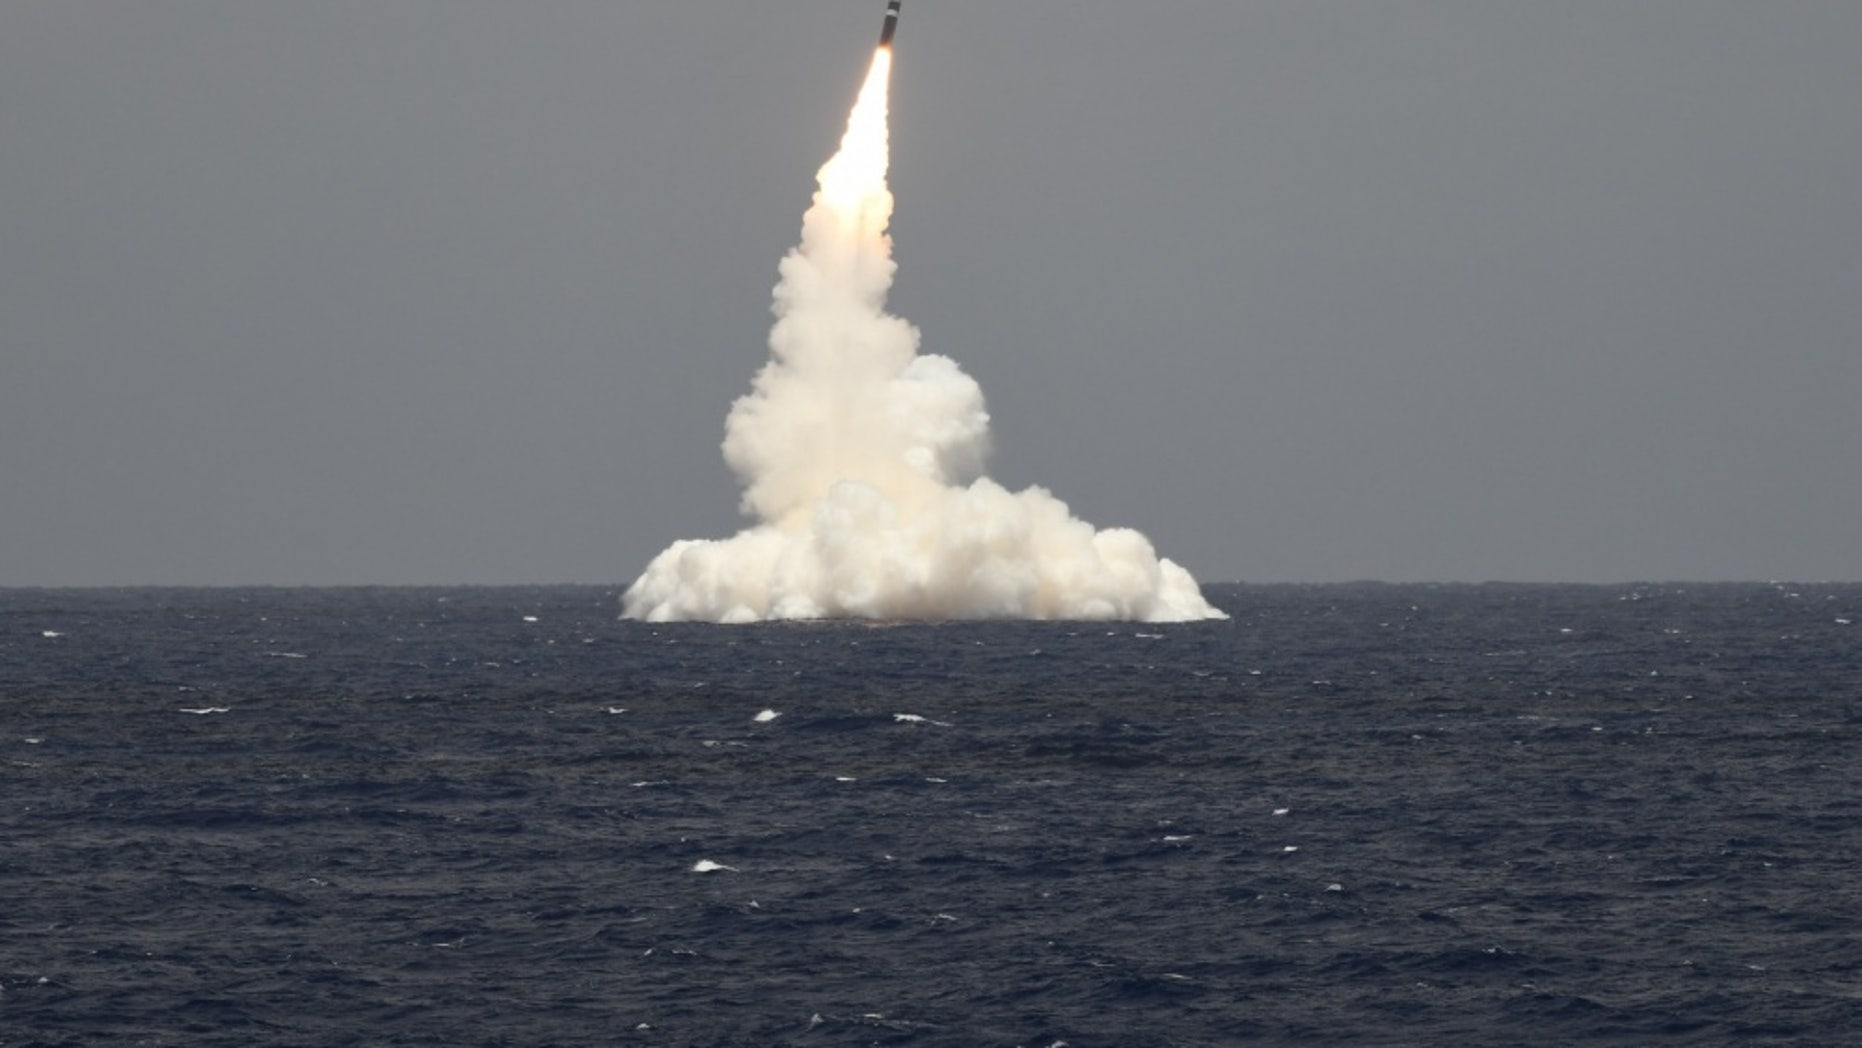 File photo - An unarmed Trident II D5 missile launches from the Ohio-class ballistic missile submarine USS Rhode Island (SSBN 740) off the coast of Cape Canaveral, Florida, May 9, 2019. (U.S. Navy photo by John Kowalski/Released)